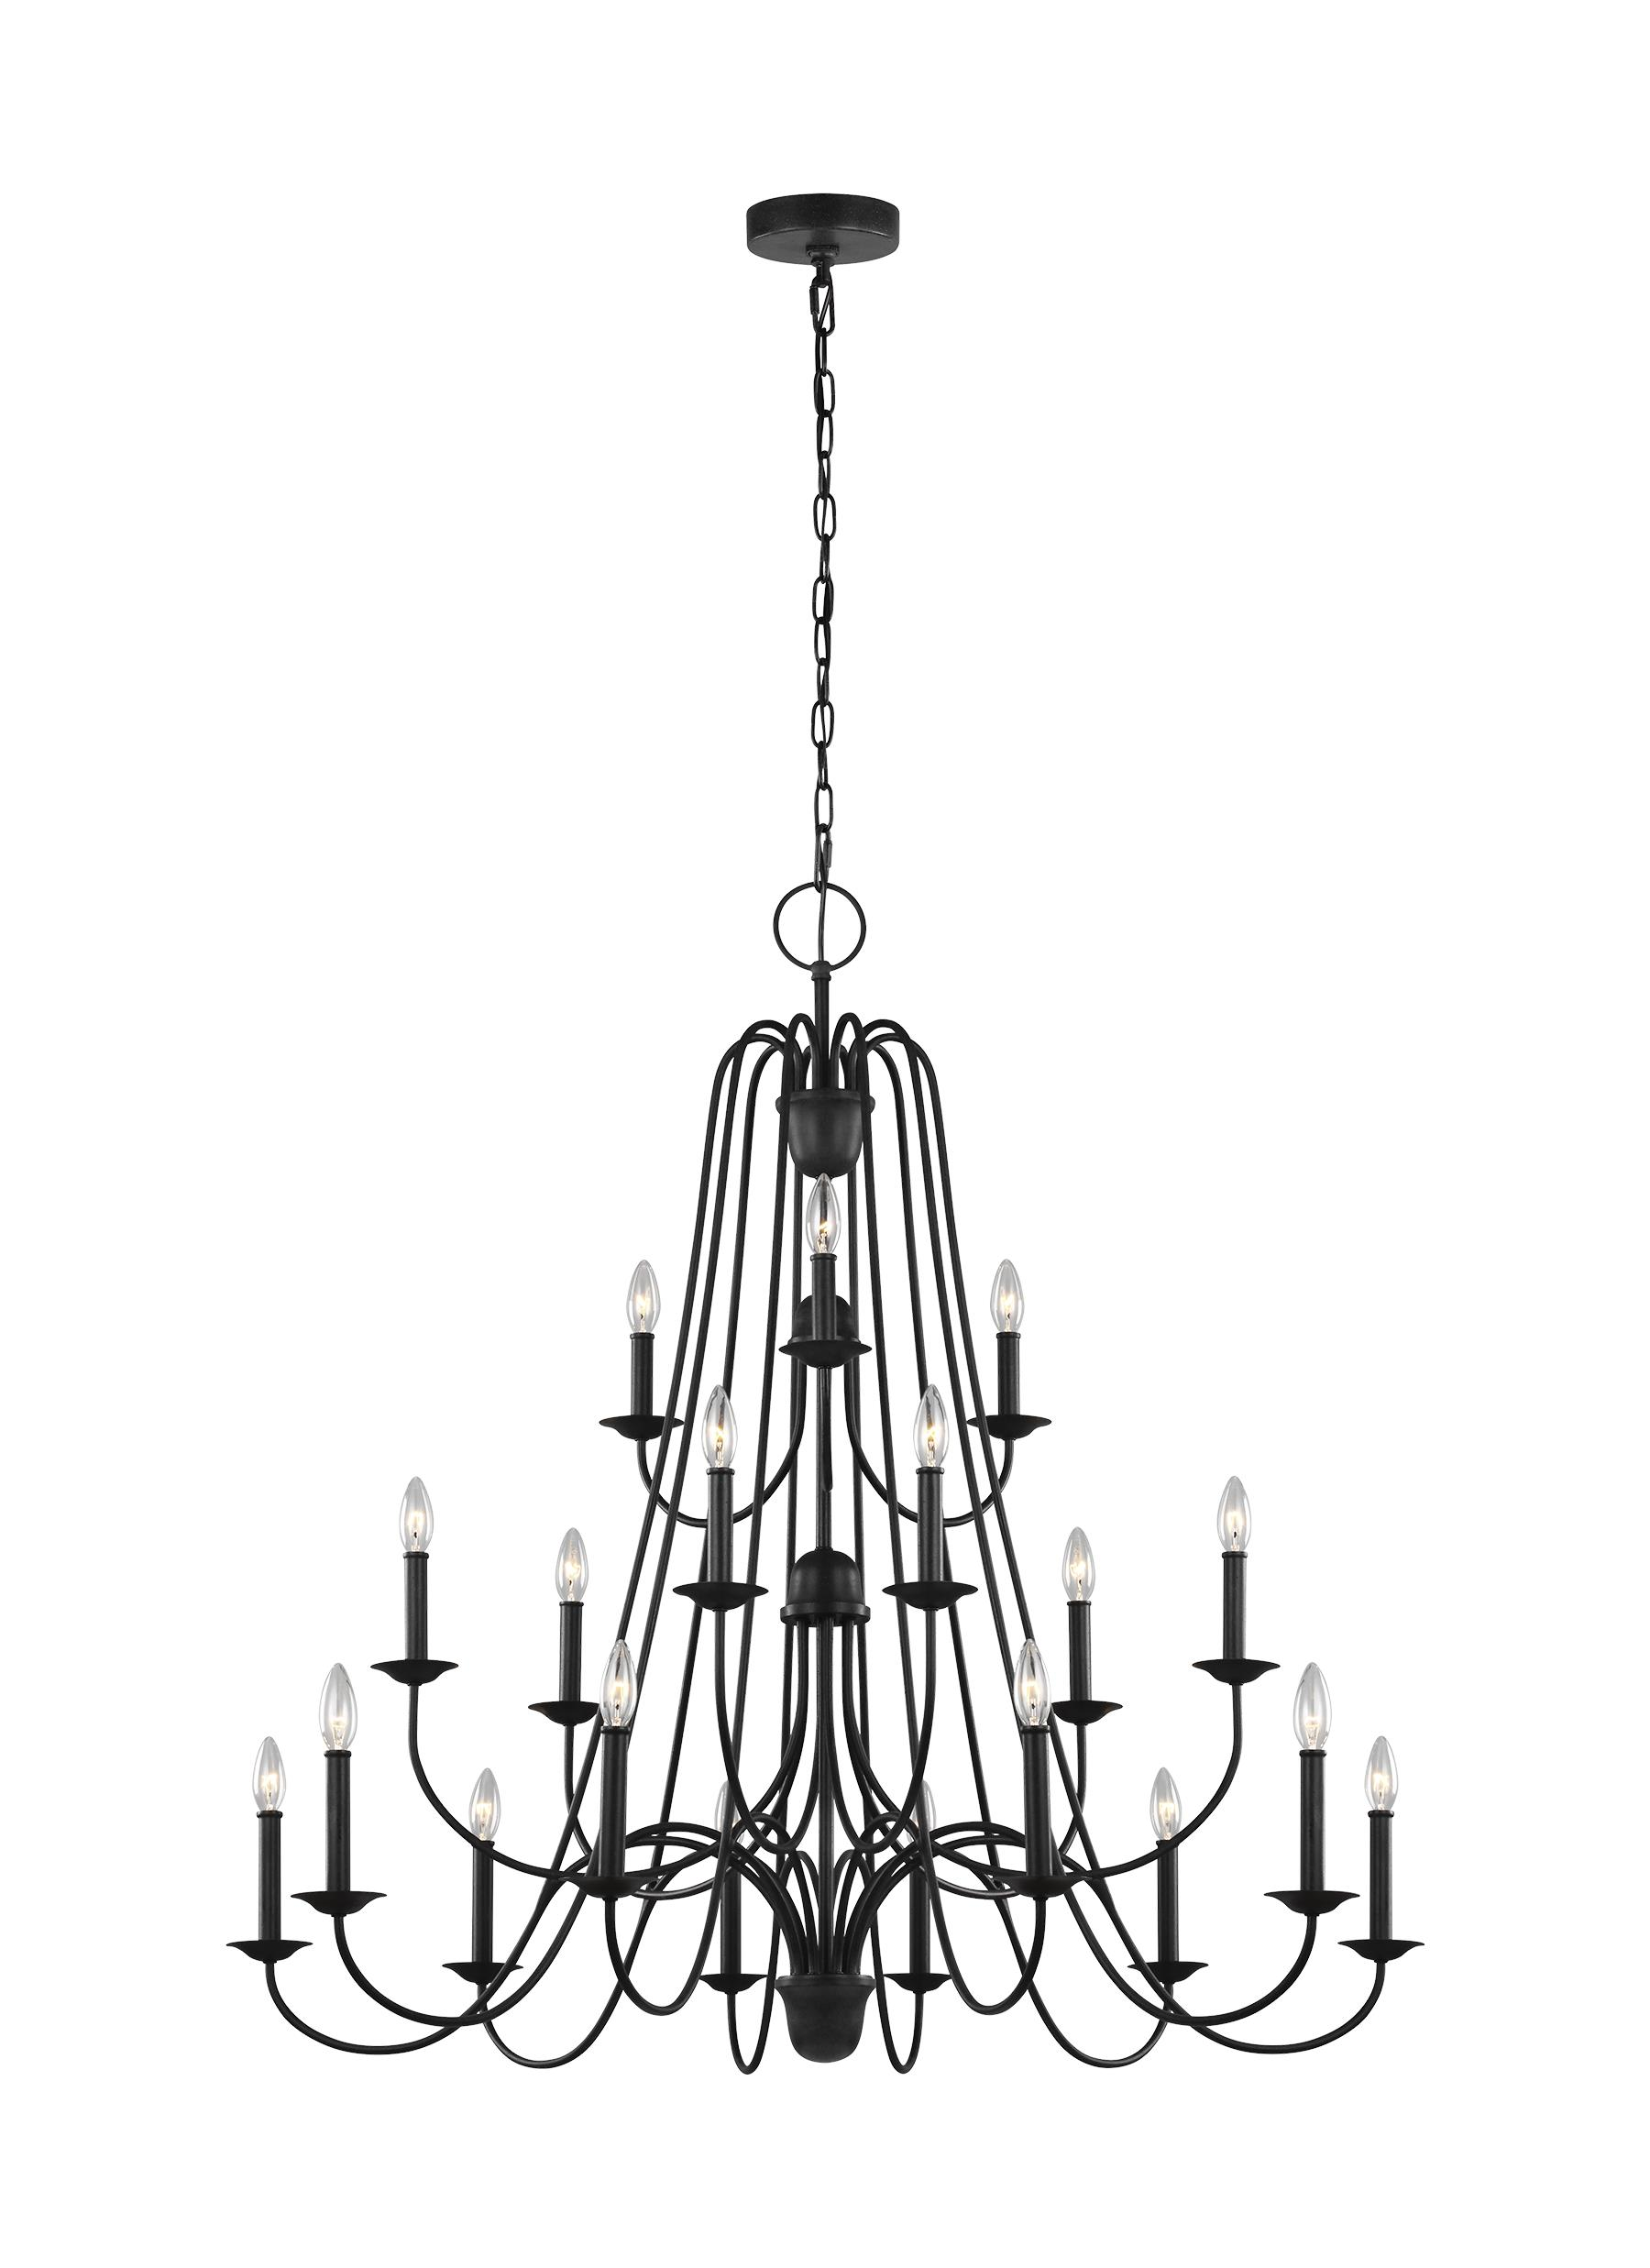 Boughton lighting collection from feiss 18 light chandelier arubaitofo Image collections